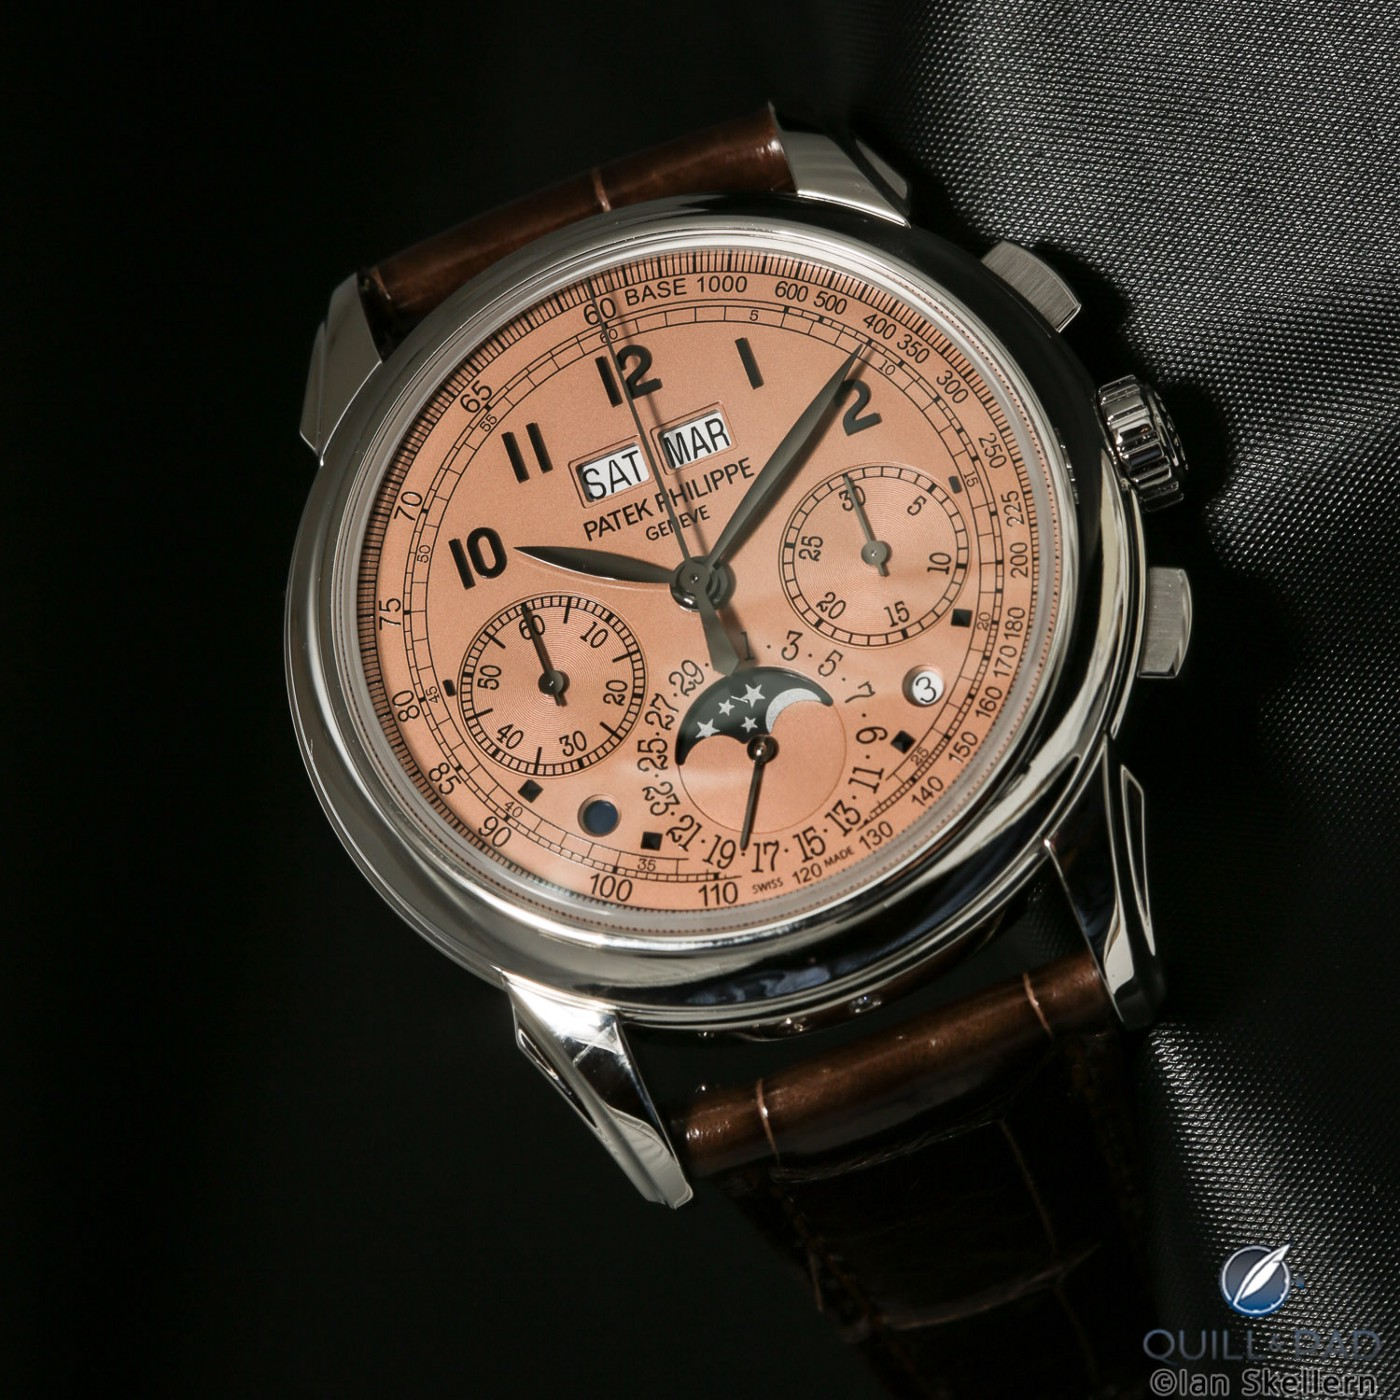 Patek Philippe Reference 5270P Perpetual Chronograph with salmon dial